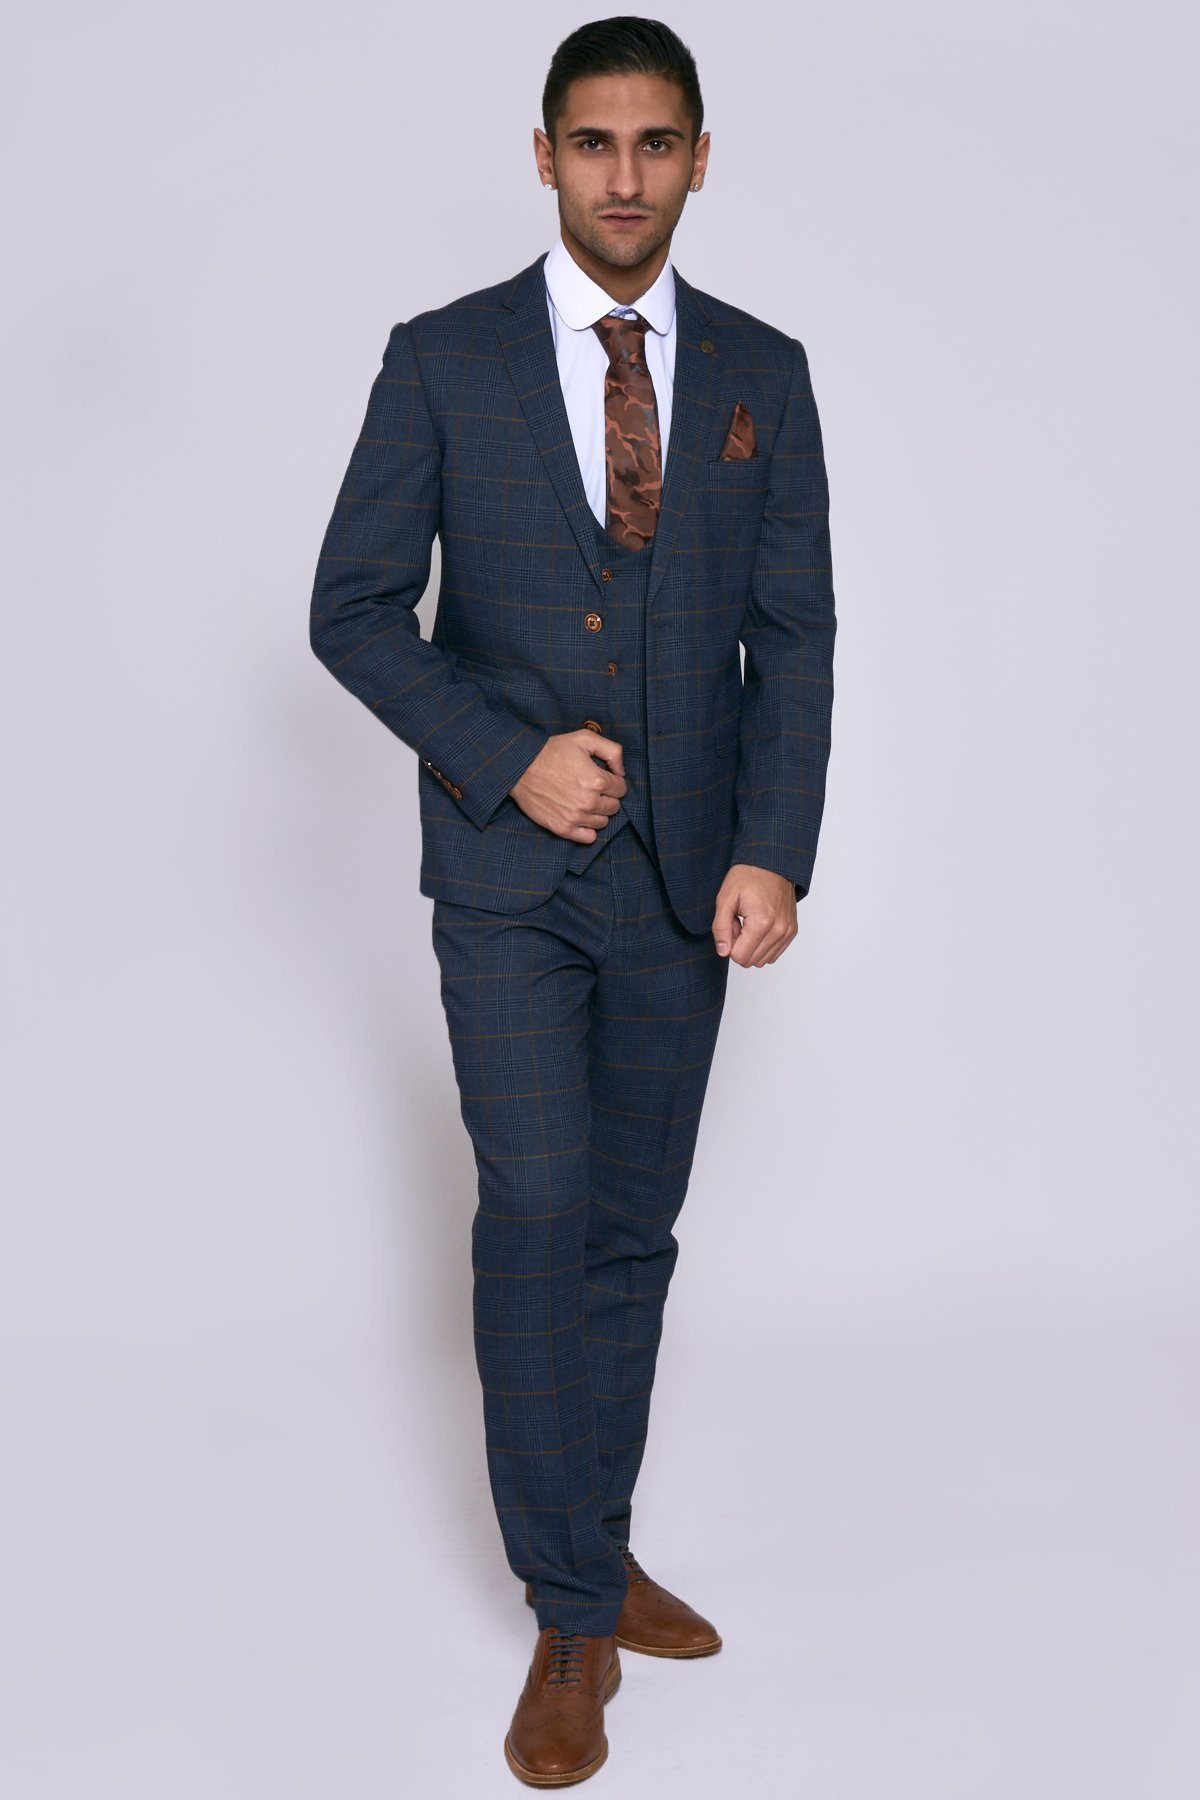 JENSON - Marine Navy Check Suit